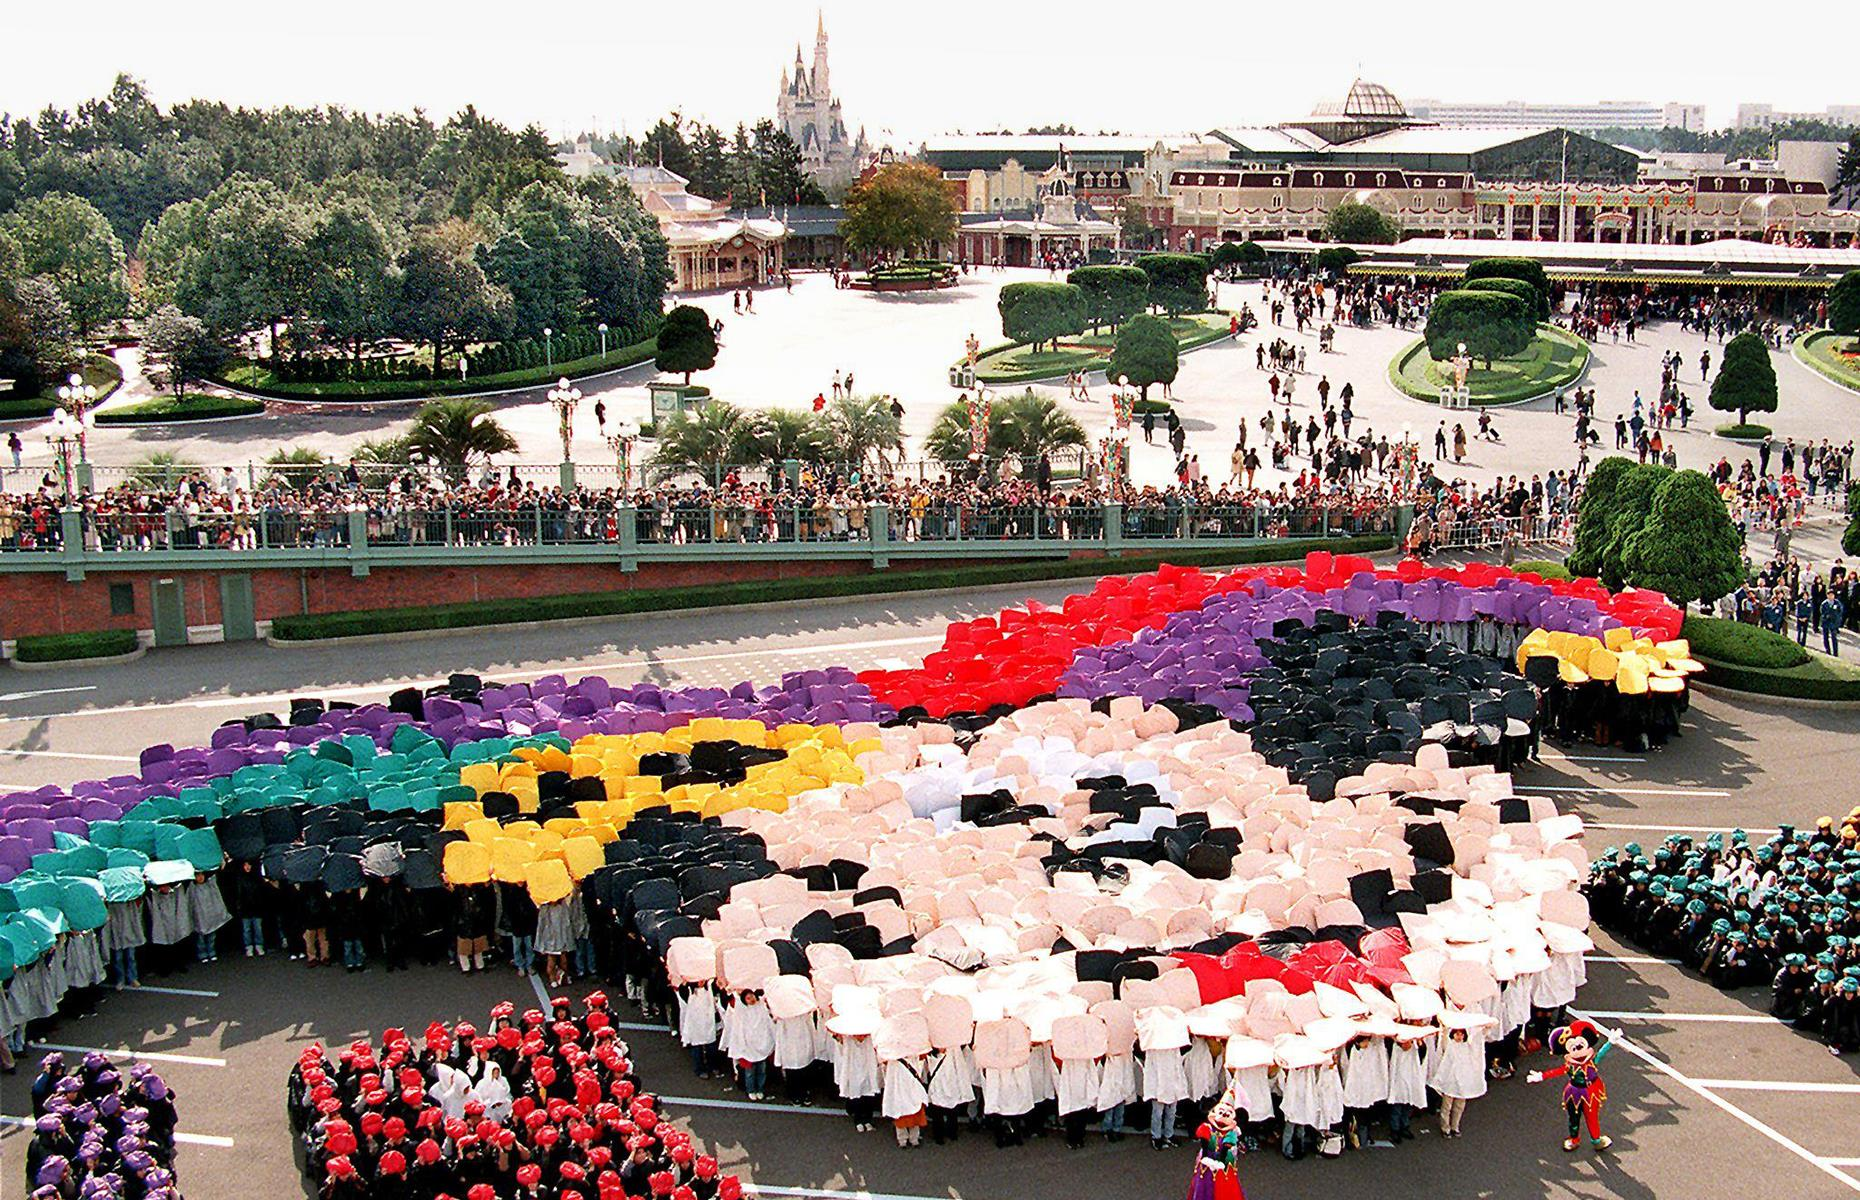 Slide 32 of 38: Some 15 years after its opening, in 1998, Tokyo Disneyland garnered world attention for the creative way it marked Mickey Mouse's 70th birthday. The celebratory spectacle involved more than 2,000 people holding colorful materials above their heads to form an image of Mickey's beaming face.